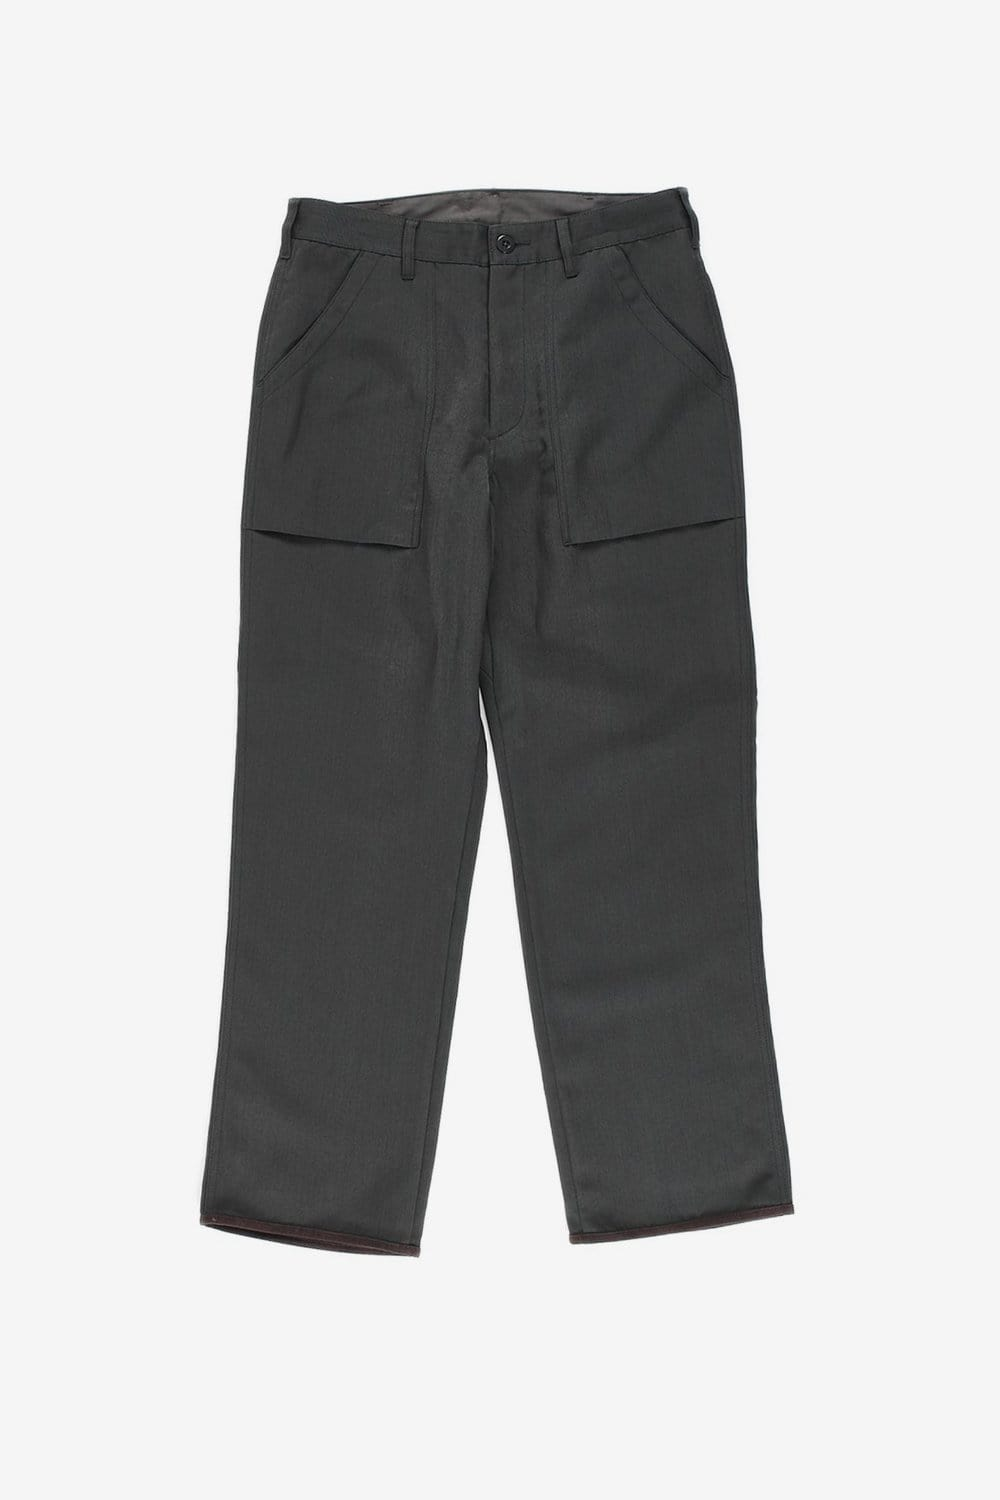 Nanamica Apparel Dock Pants Charcoal